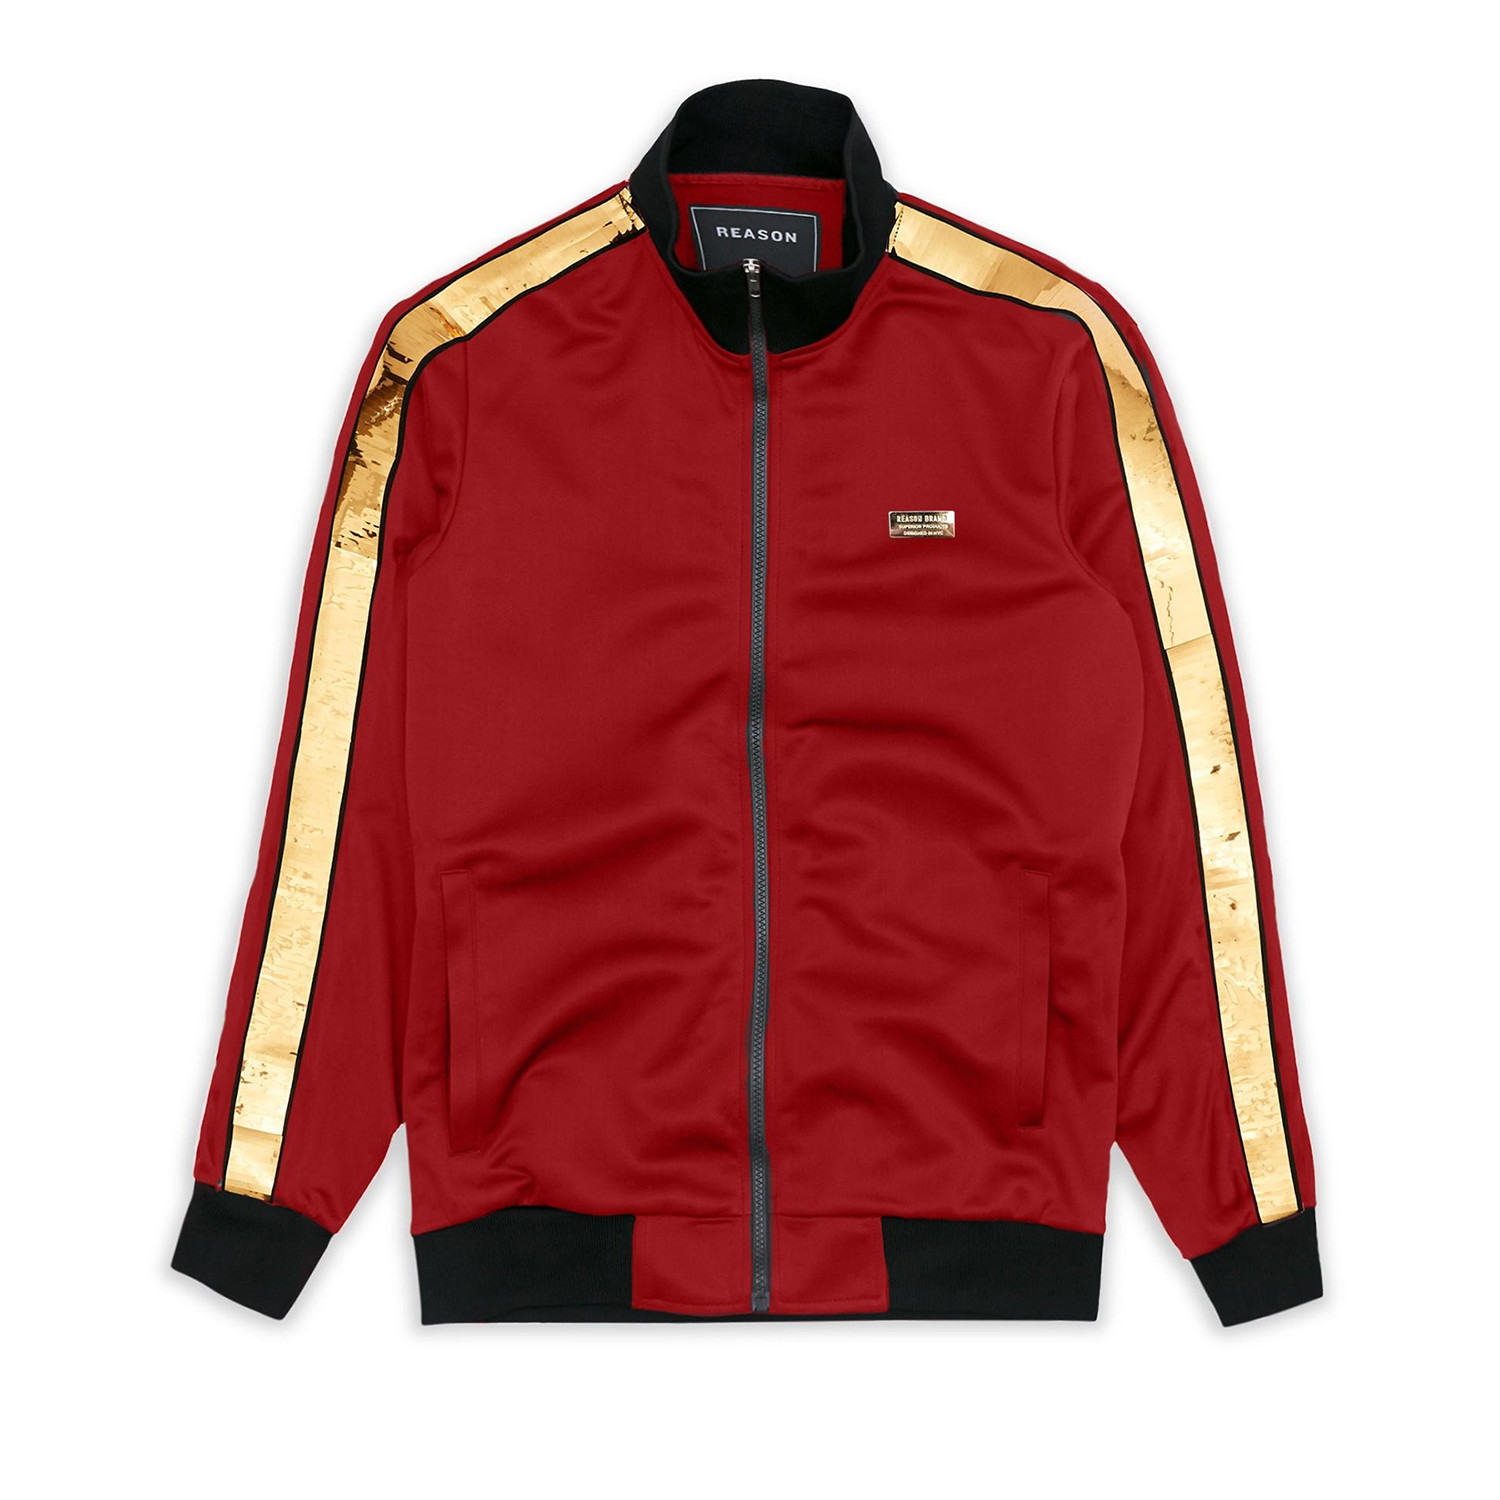 0d2a4f4a6f6 Madison Track Jacket    Red (L) - CLEARANCE  Outerwear - Touch of Modern